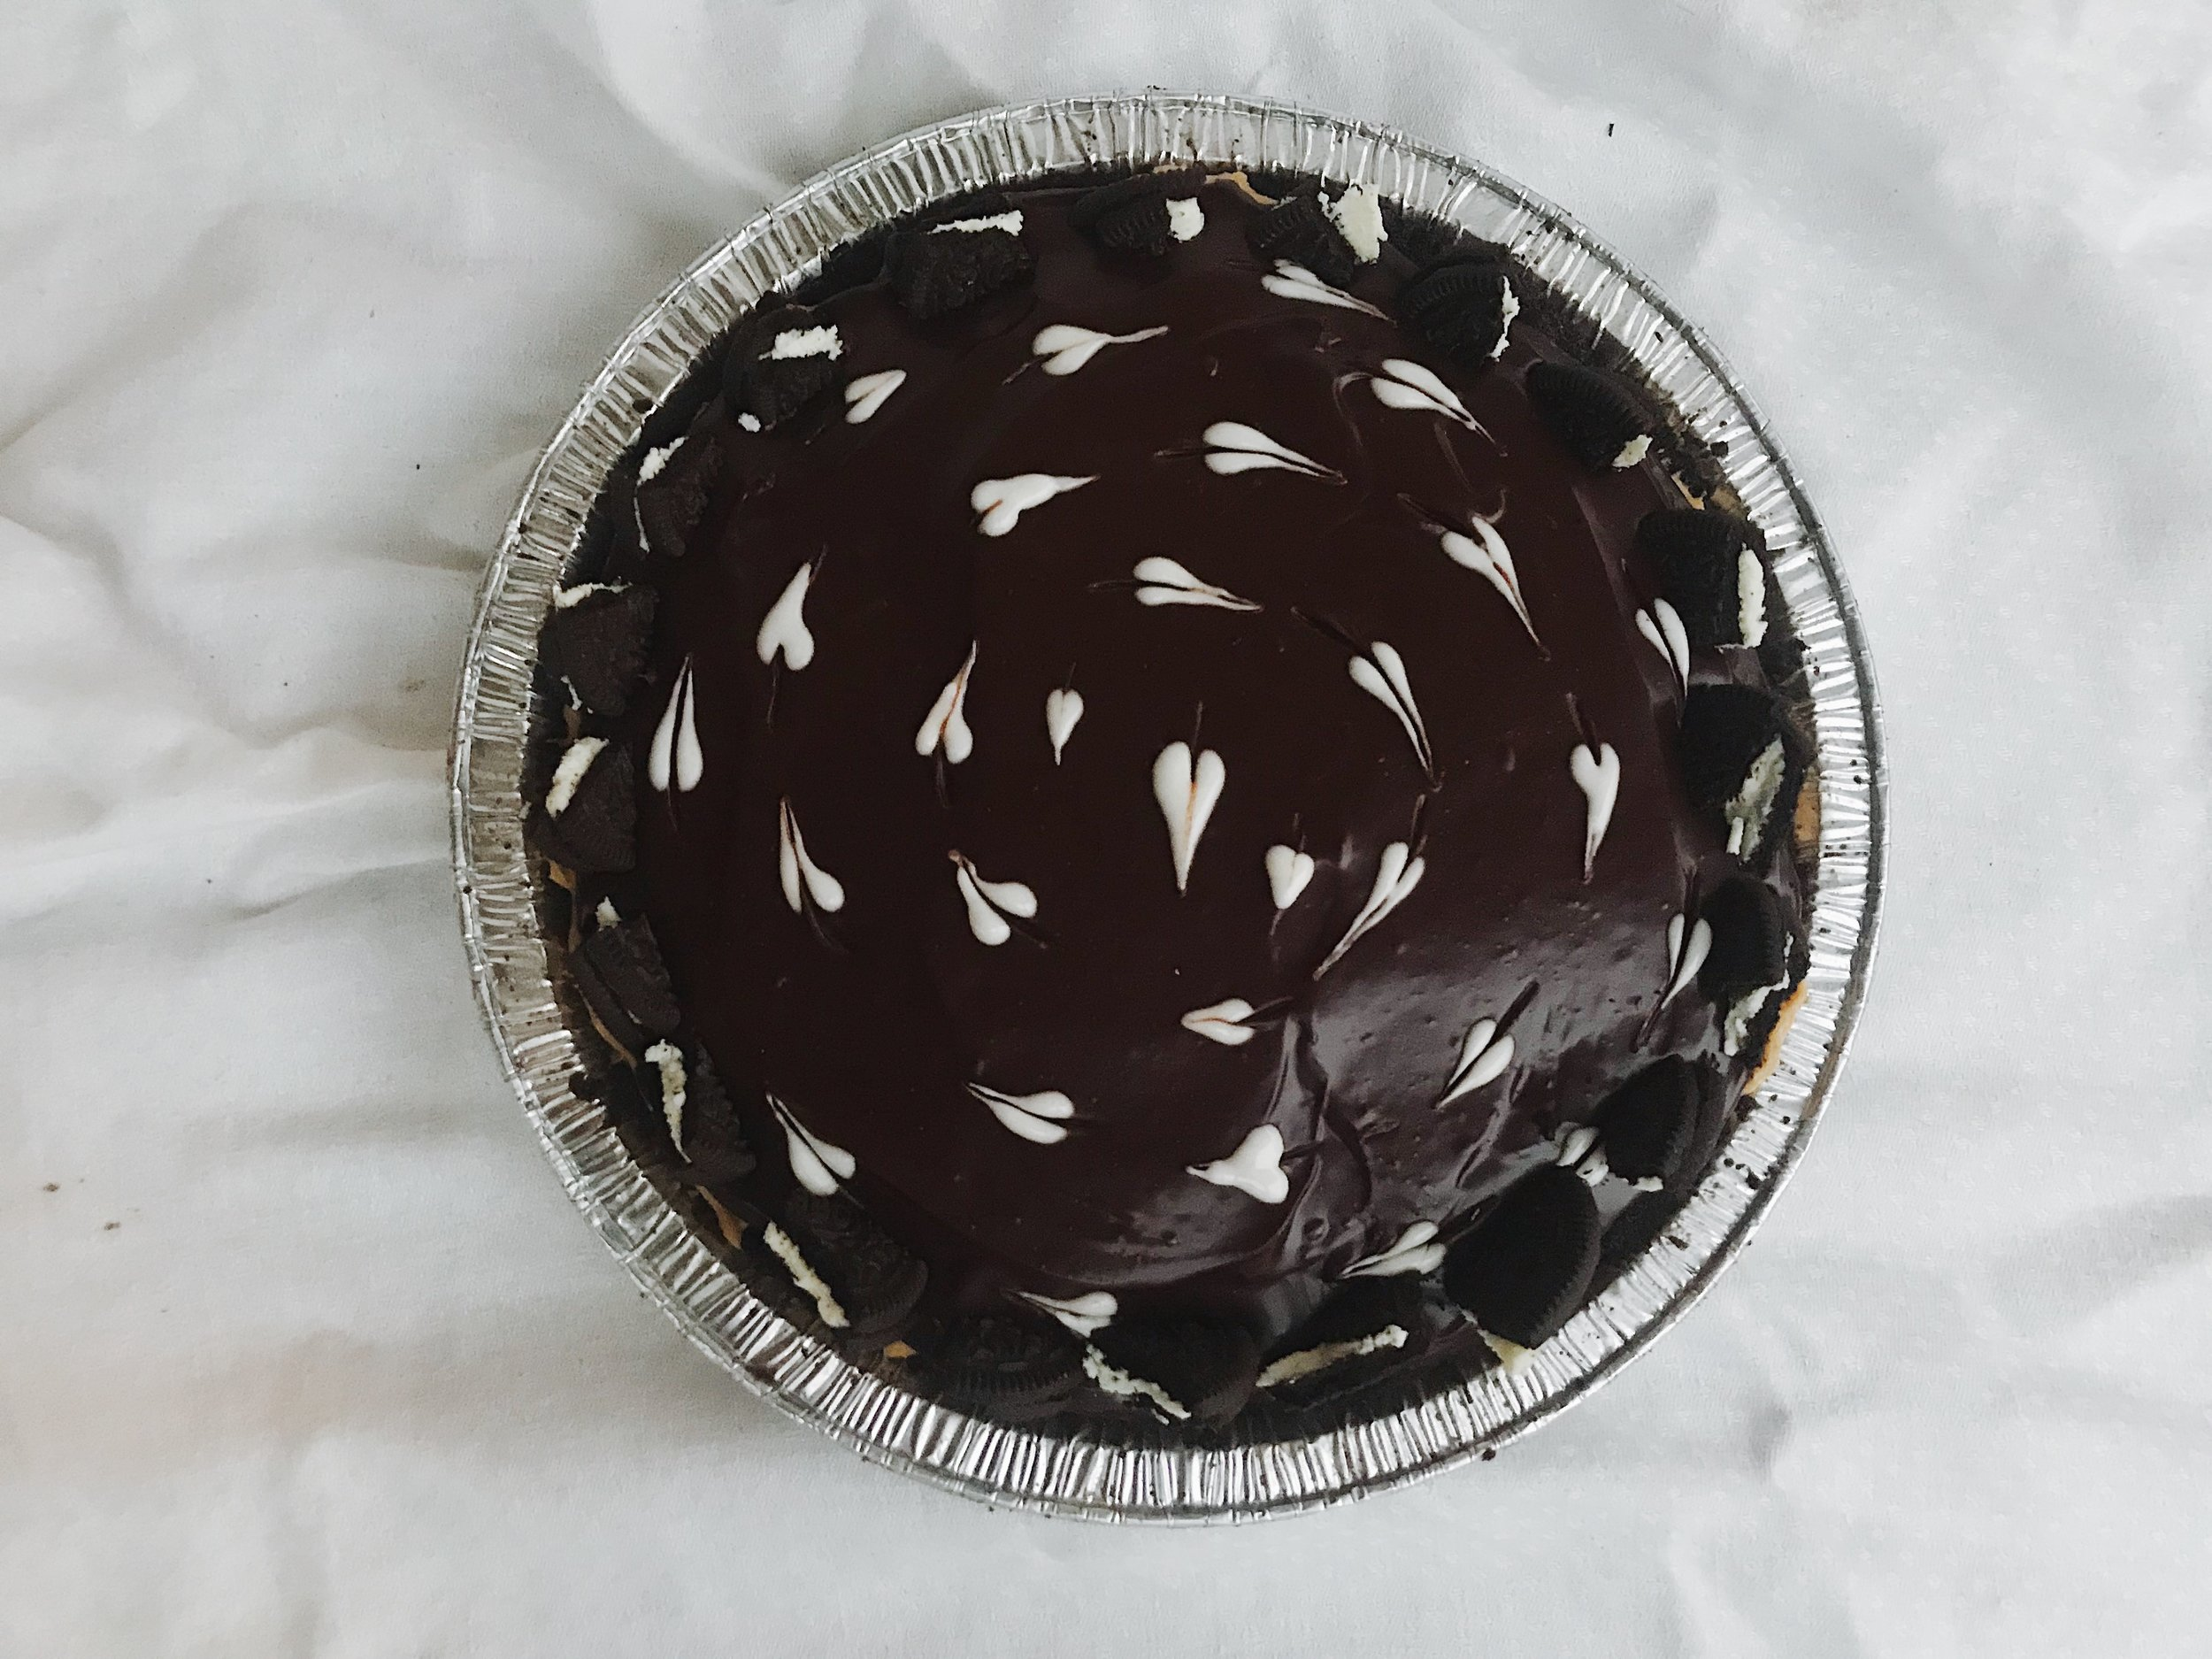 Peanut butter mousse pie topped with chocolate ganache and sea salt